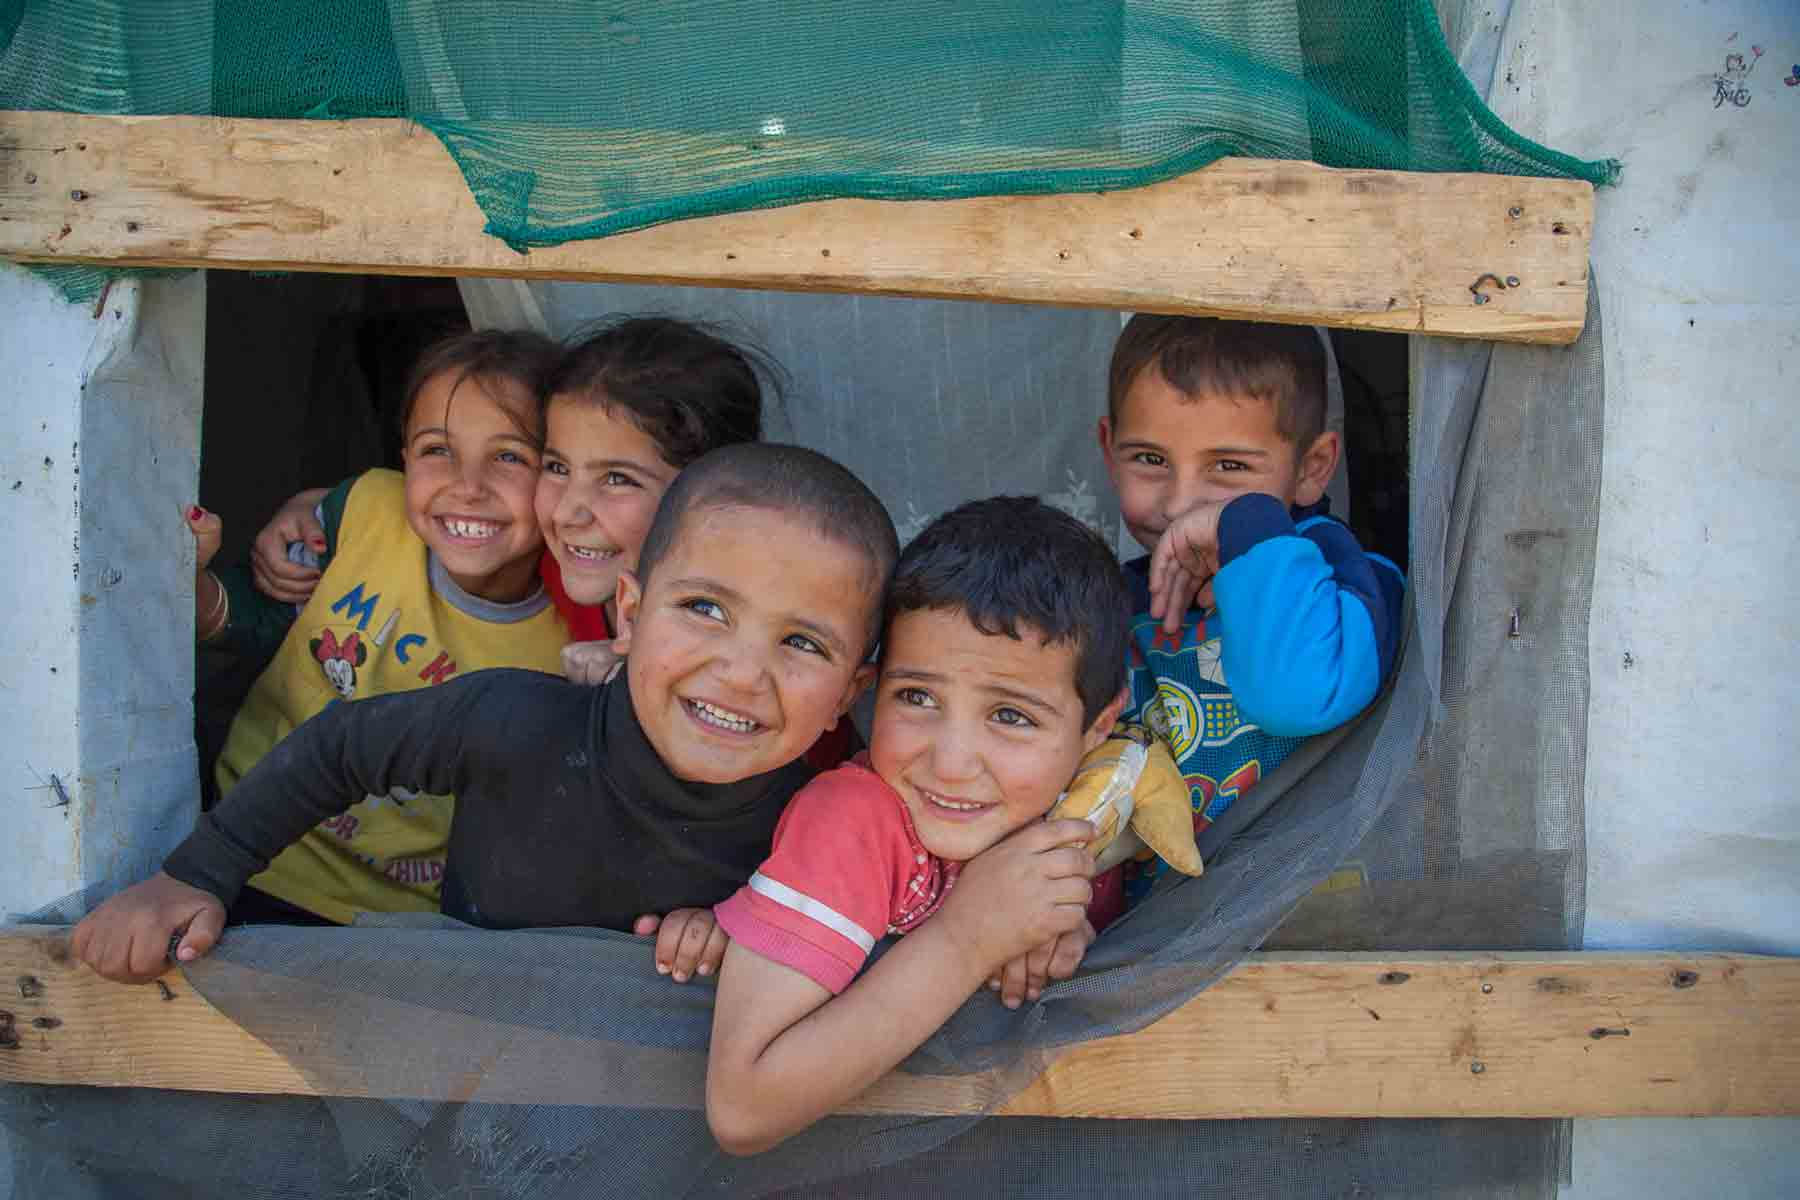 Syrian refugee children